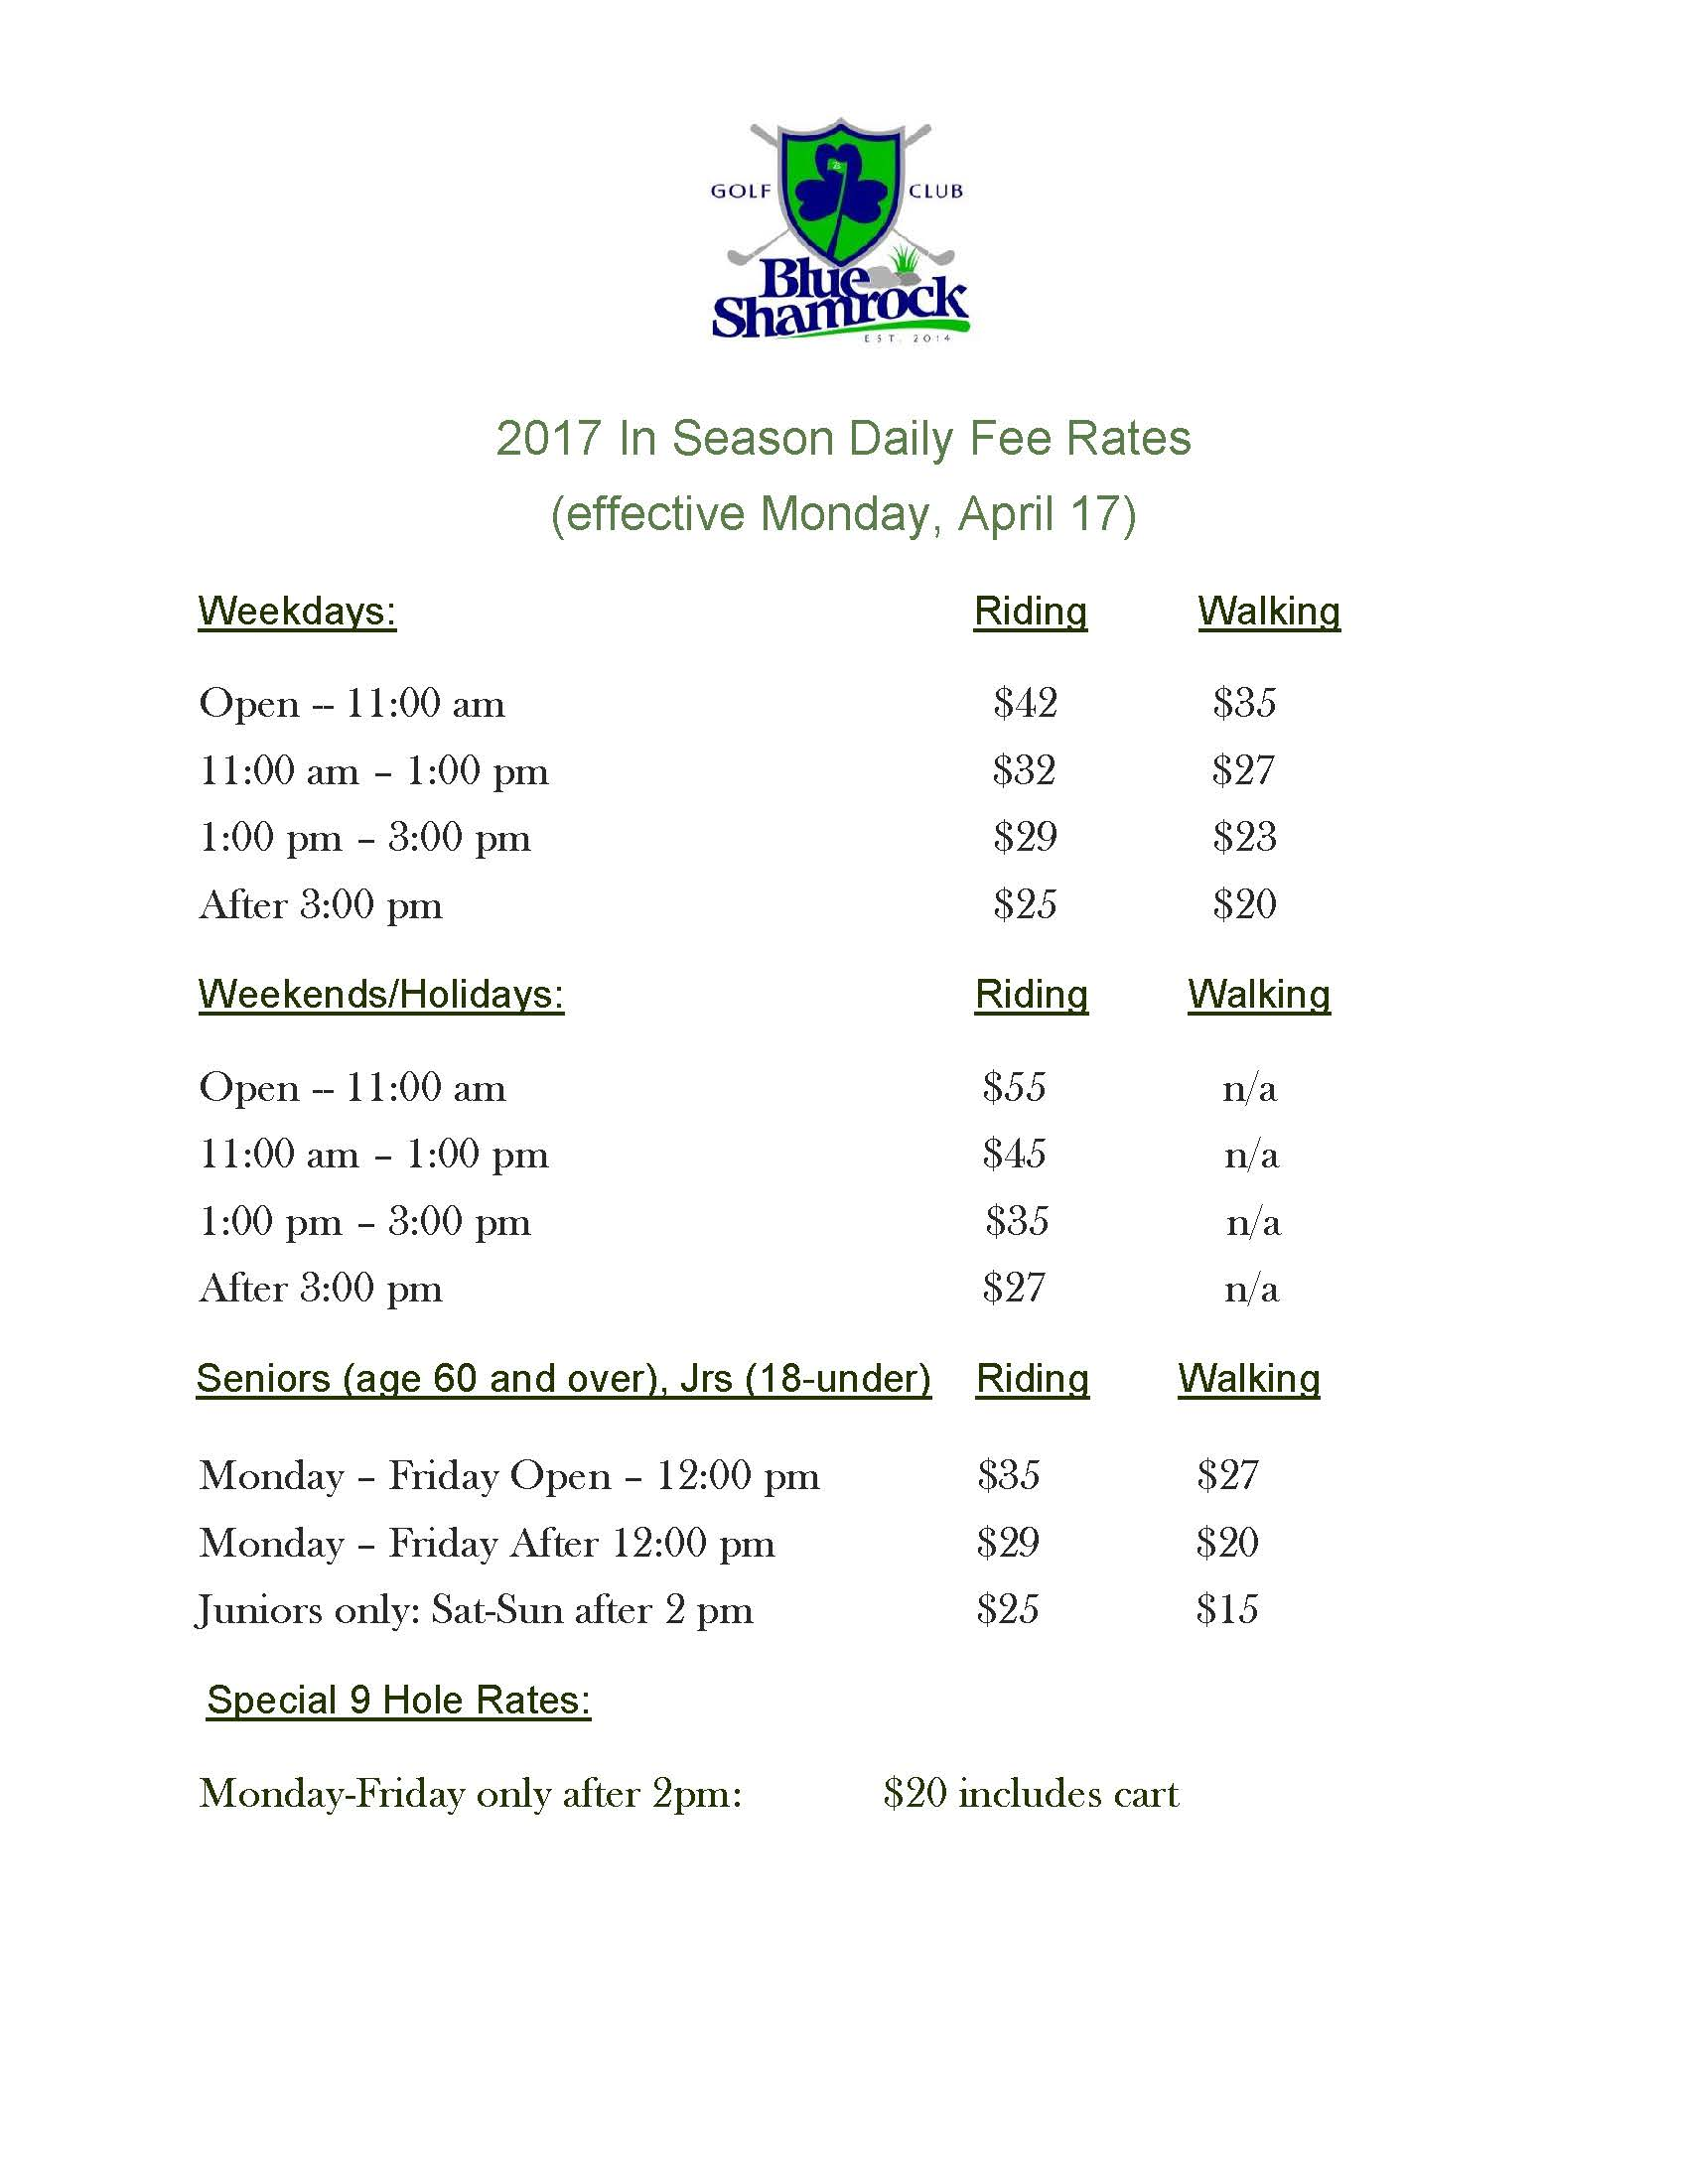 2017 Daily Fee Golf Rates 4